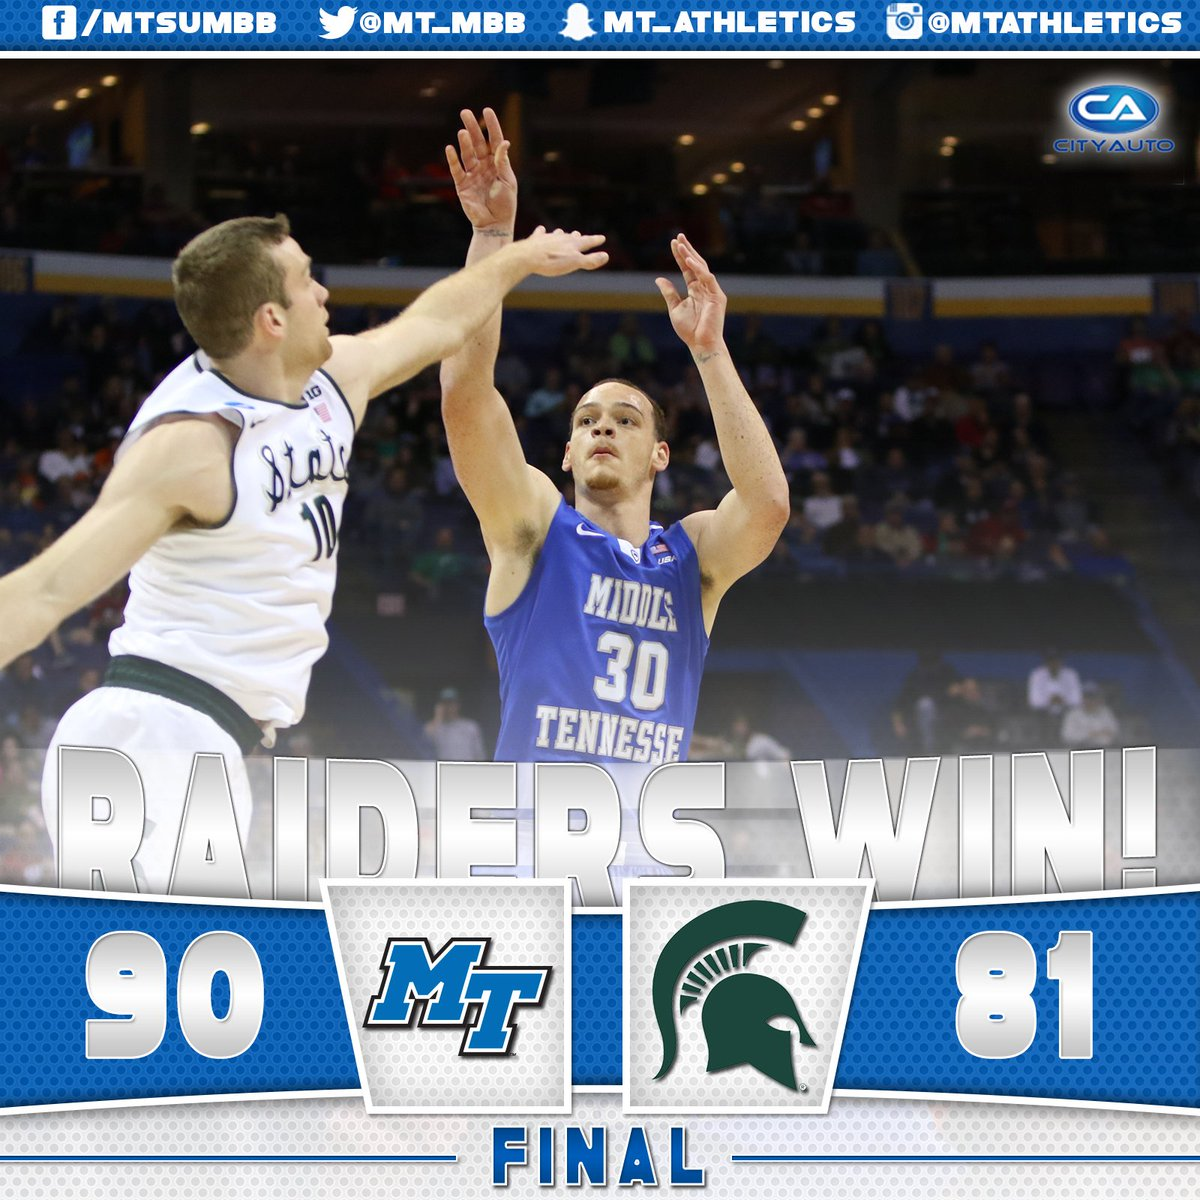 The #BlueRaiders are on to the next round! #TrueFamily #DancingRaiders https://t.co/JDVCzVBJf1